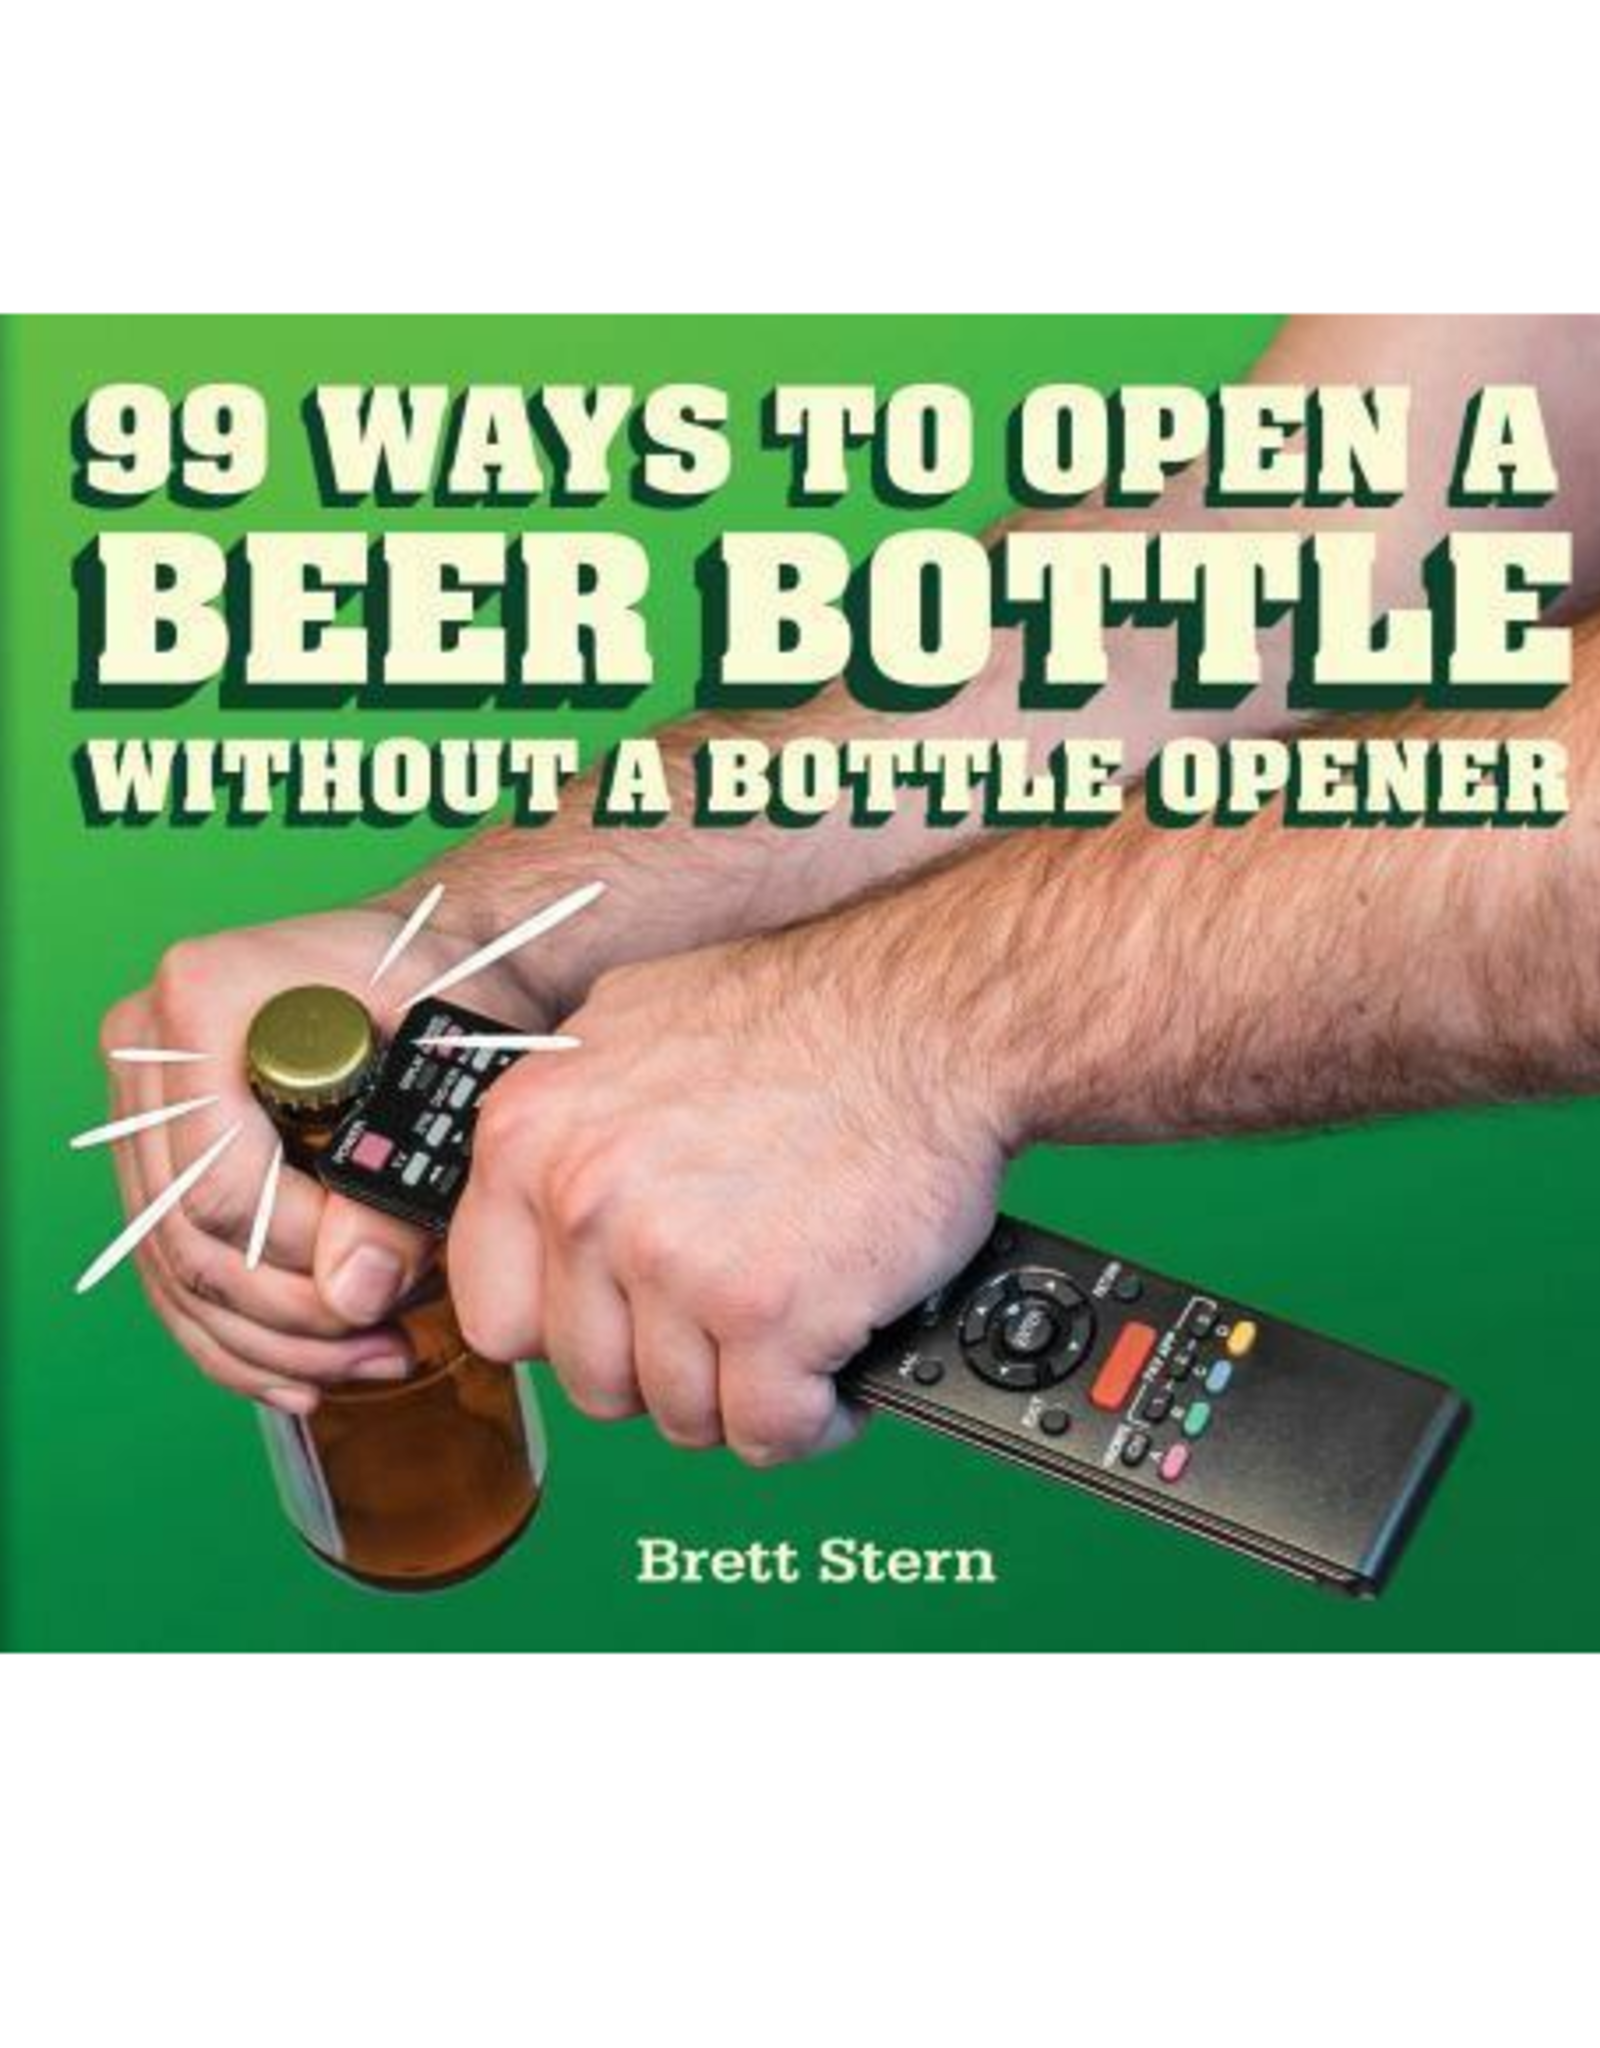 99 Ways to Open a Beer Bottle